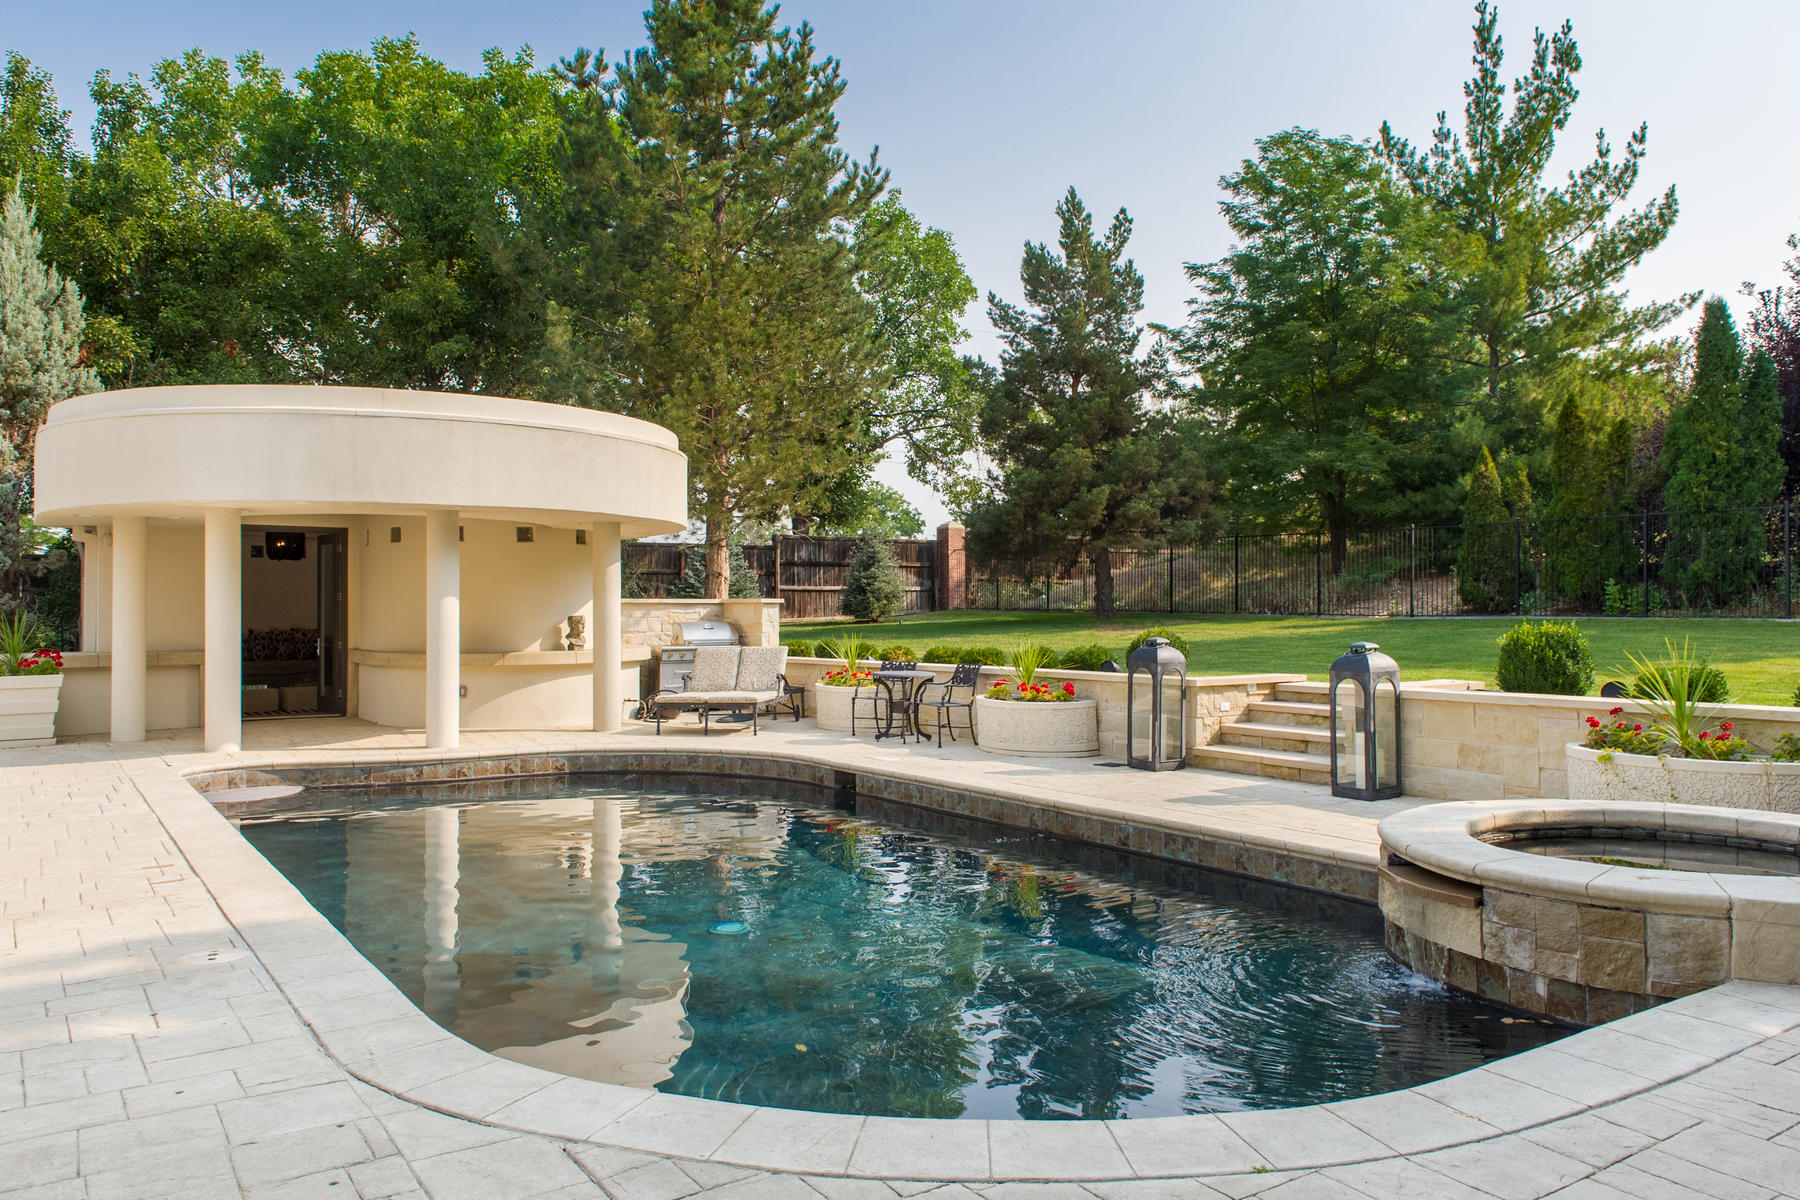 Additional photo for property listing at 52 Sedgwick Drive 52 Sedgwick Drive Cherry Hills Village, Colorado 80113 United States